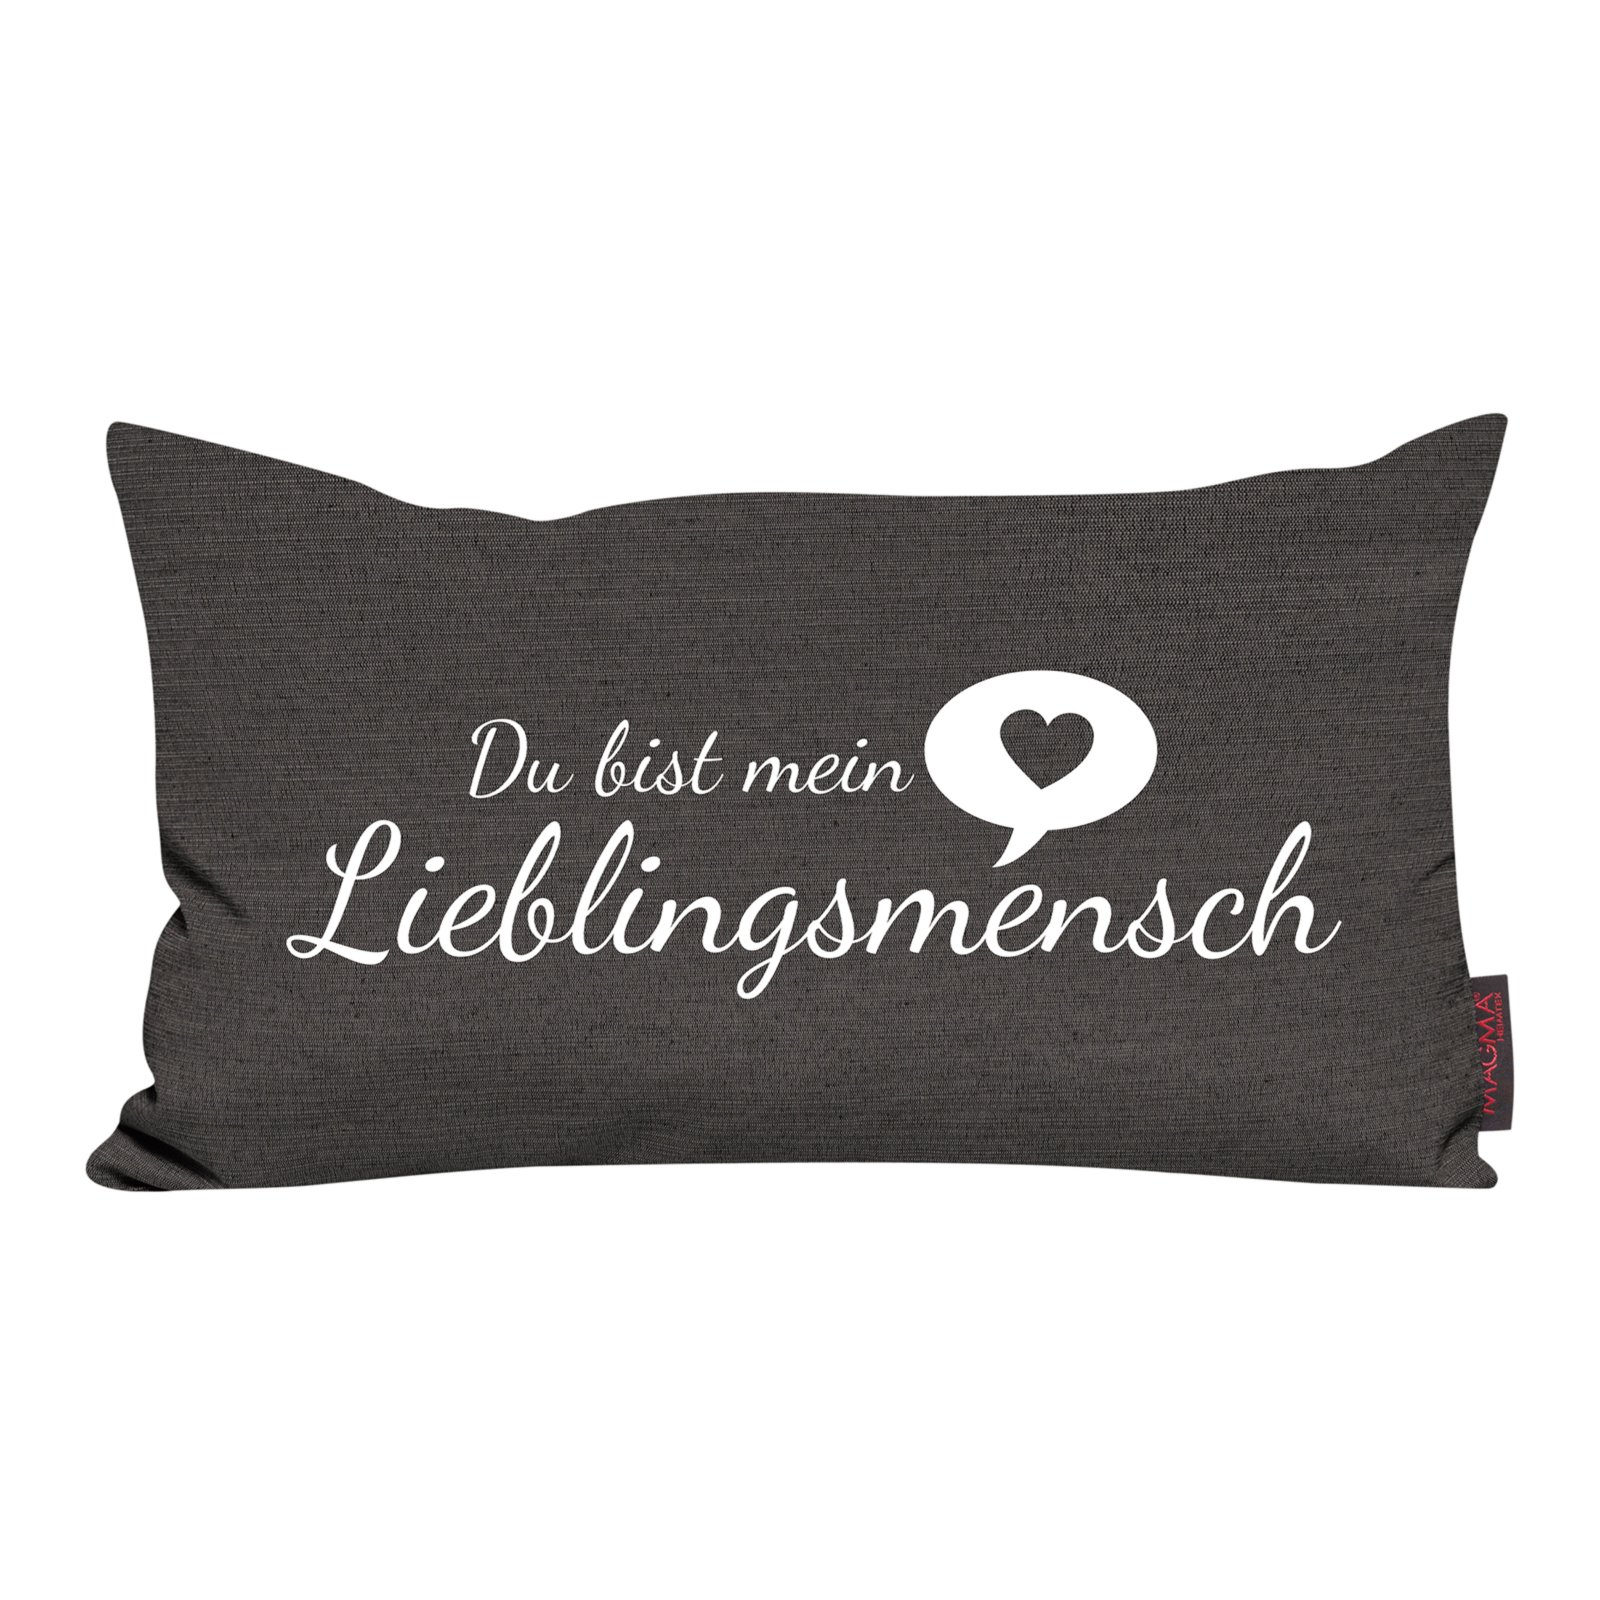 kissen anthrazit lieblingsmensch 30x50 cm sofakissen kissen deko haushalt roller. Black Bedroom Furniture Sets. Home Design Ideas